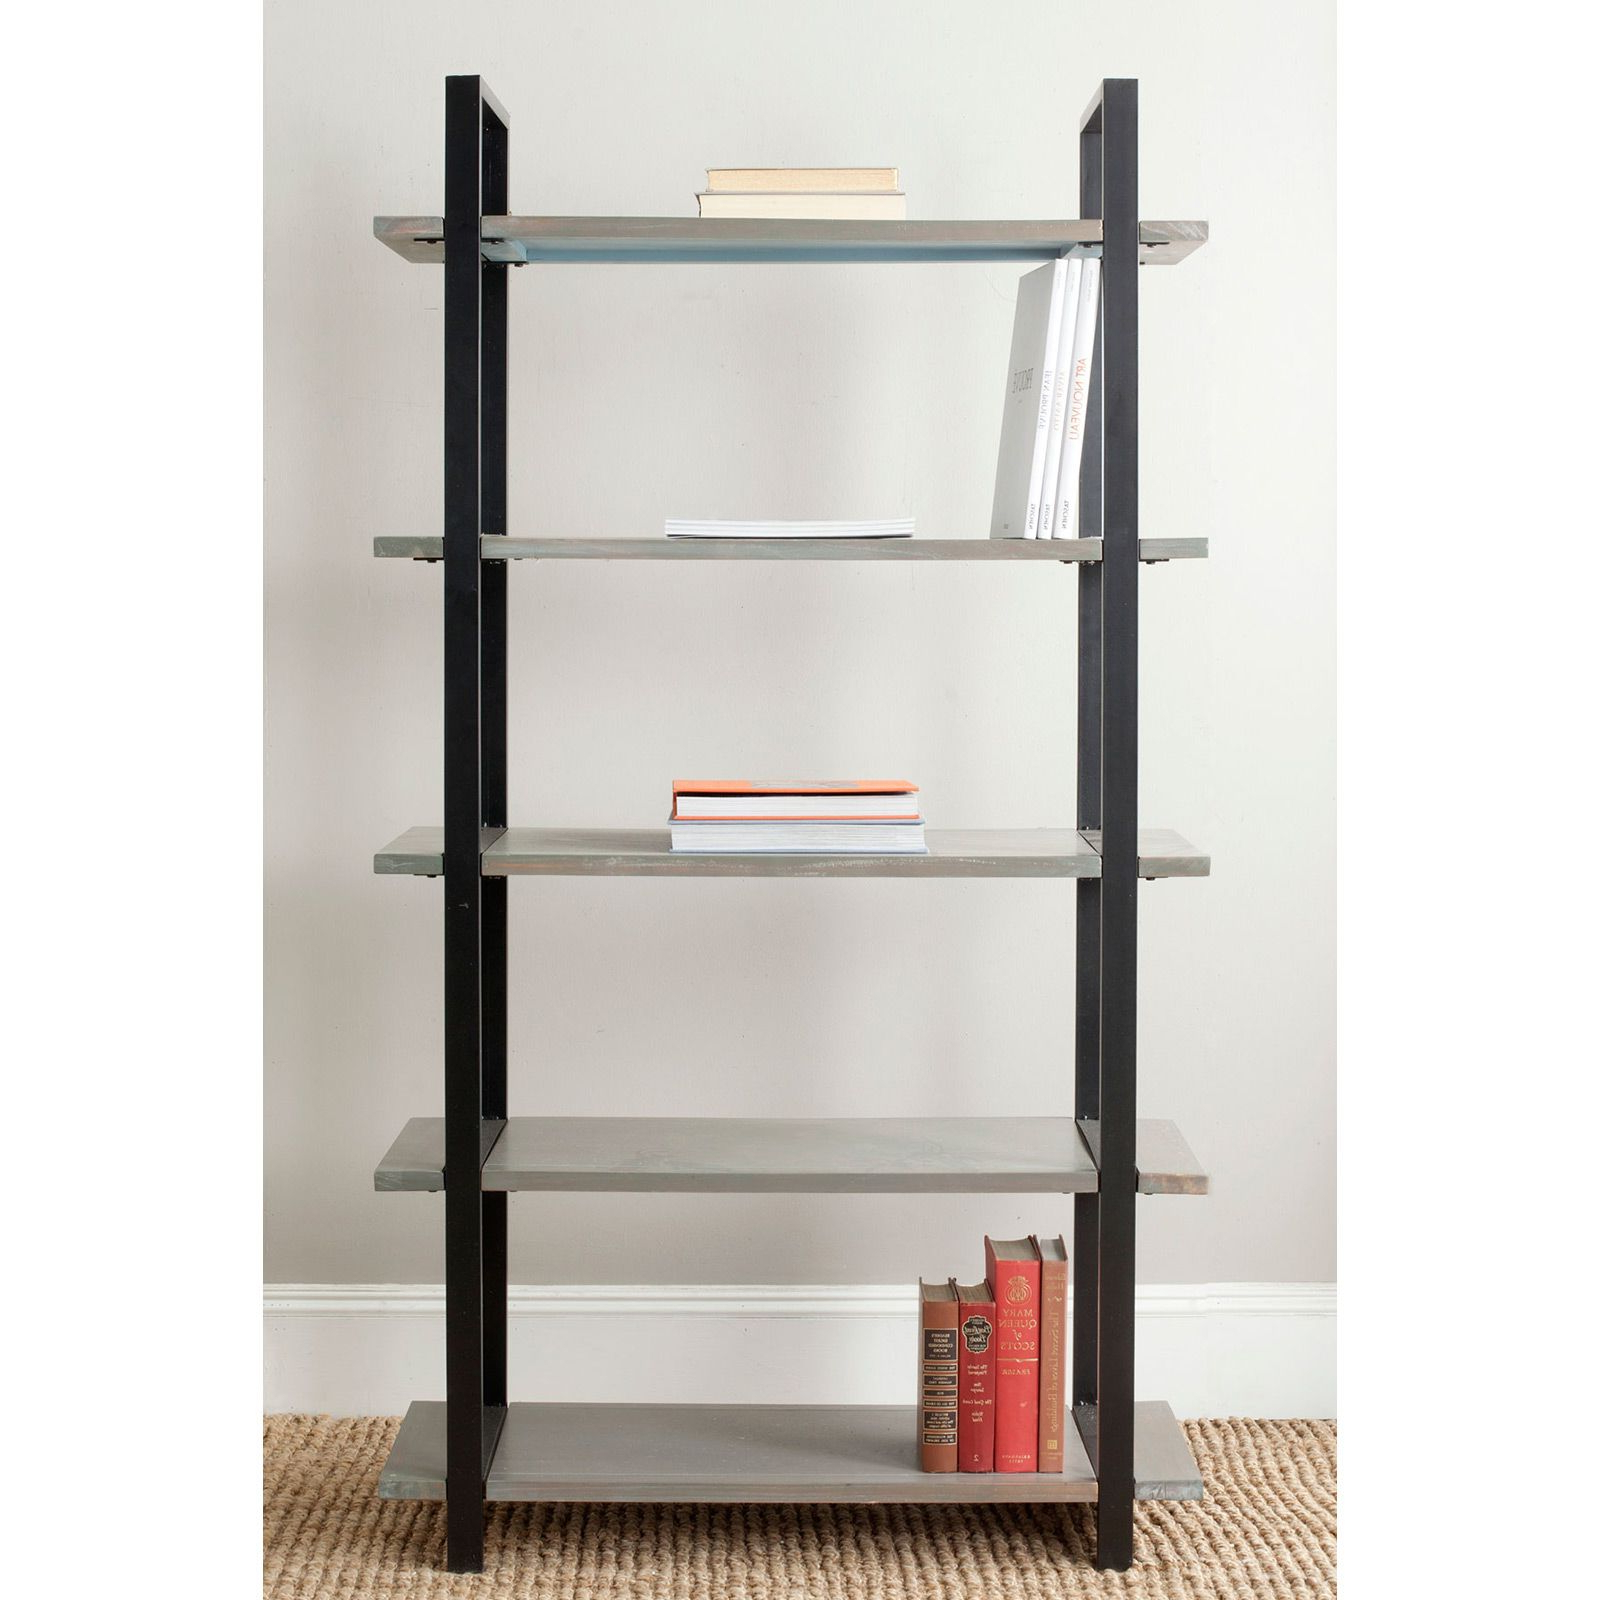 Gladstone Etagere Bookcases Regarding Current Furniture And Décor For The Modern Lifestyle (View 16 of 20)